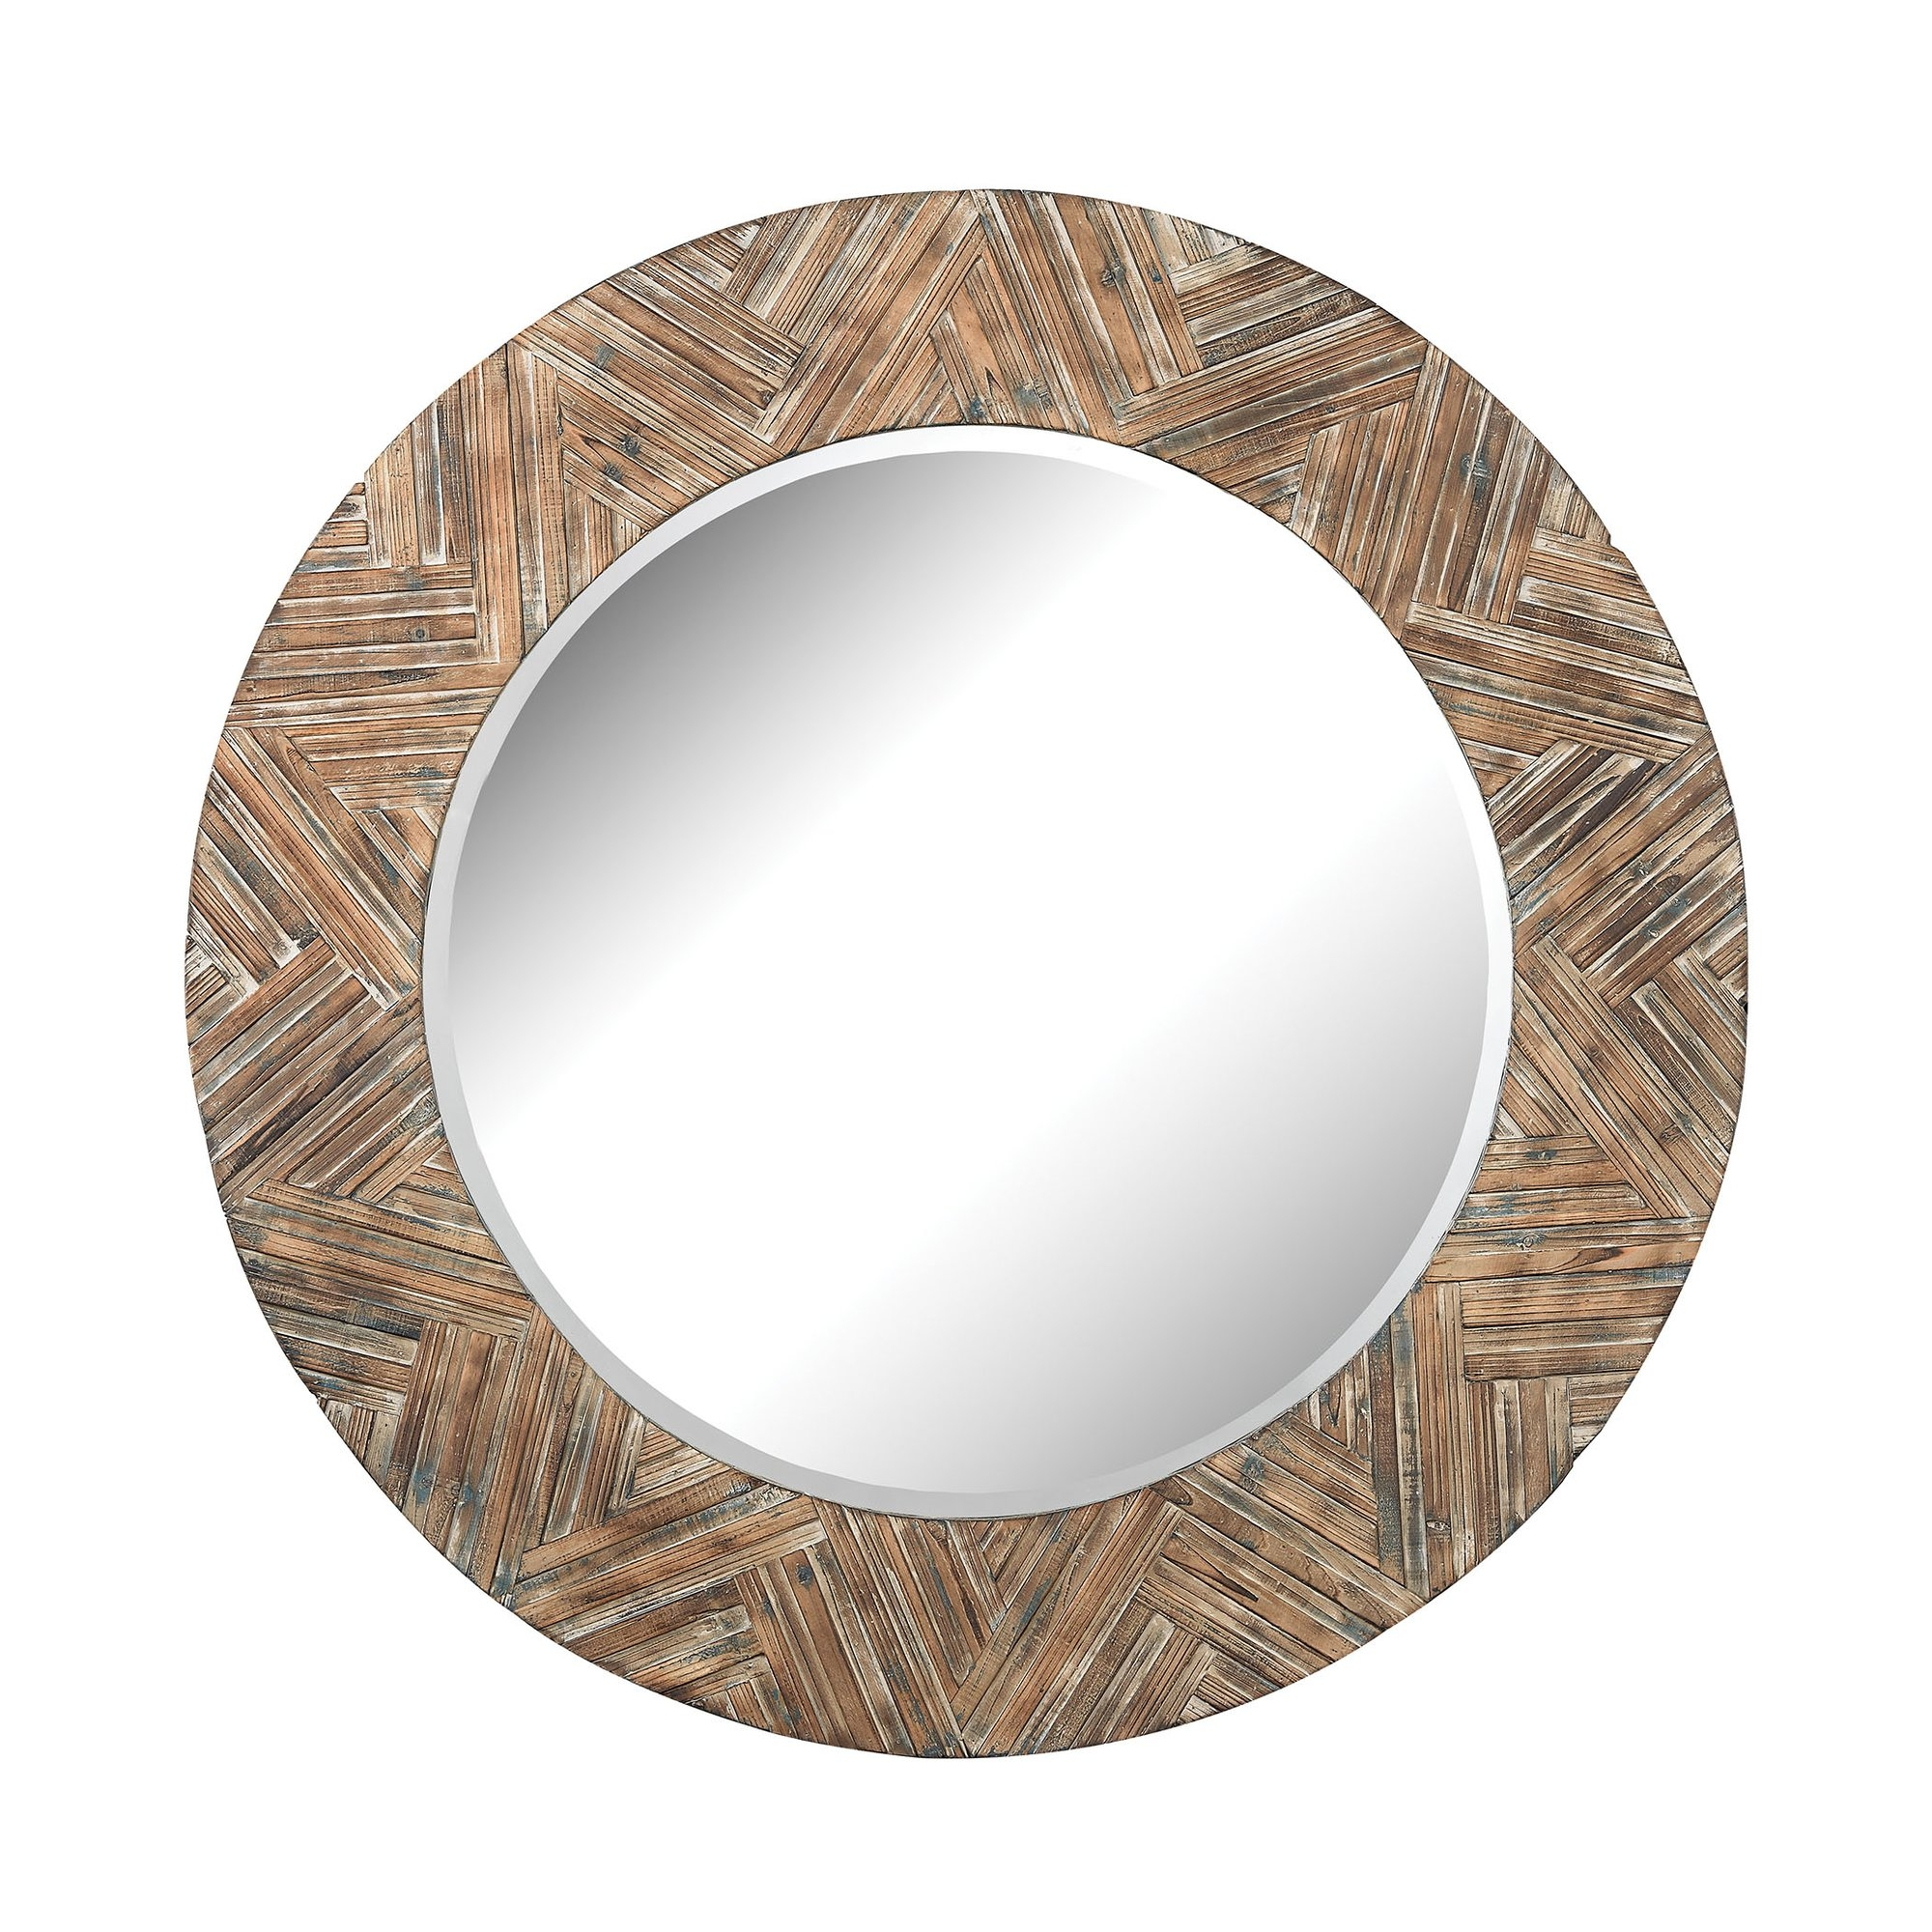 Mistana Large Round Wood Frame Wicker Mirror Wayfair Intended For Large Round Wooden Mirror (Image 8 of 15)